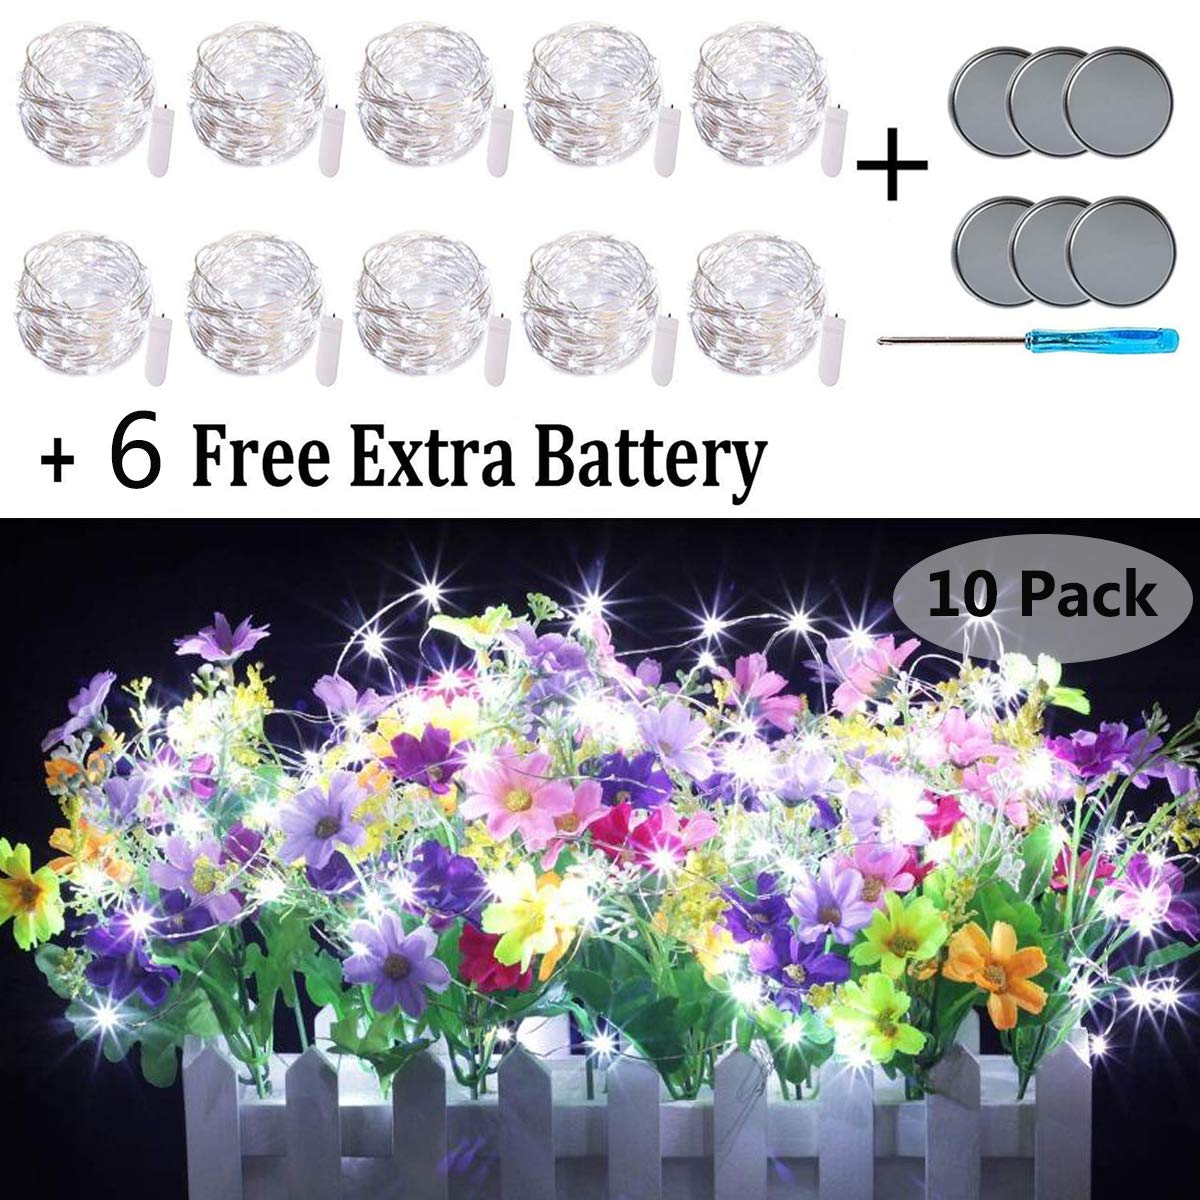 Fairy String Lights, 10 Pack 20 LED Fairy Lights Battery Operated Sliver Wire Lights + 6 PCS Extra Replacement Batteries with Starry Jar Lights for DIY Party Wedding Decorations (Cool White)